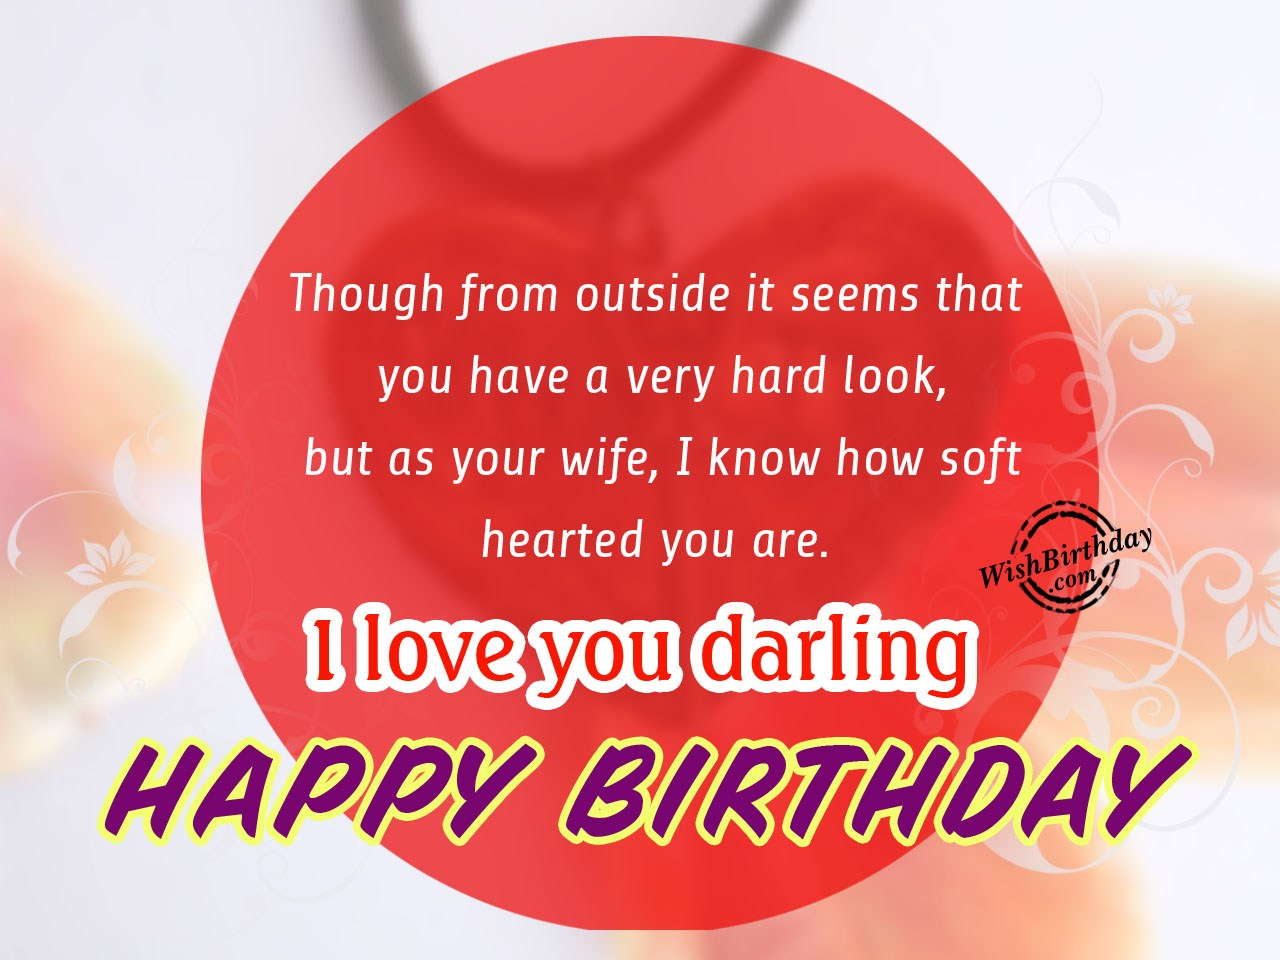 romantic greeting cards for husband birthday ; Though-from-outside-it-seems-that